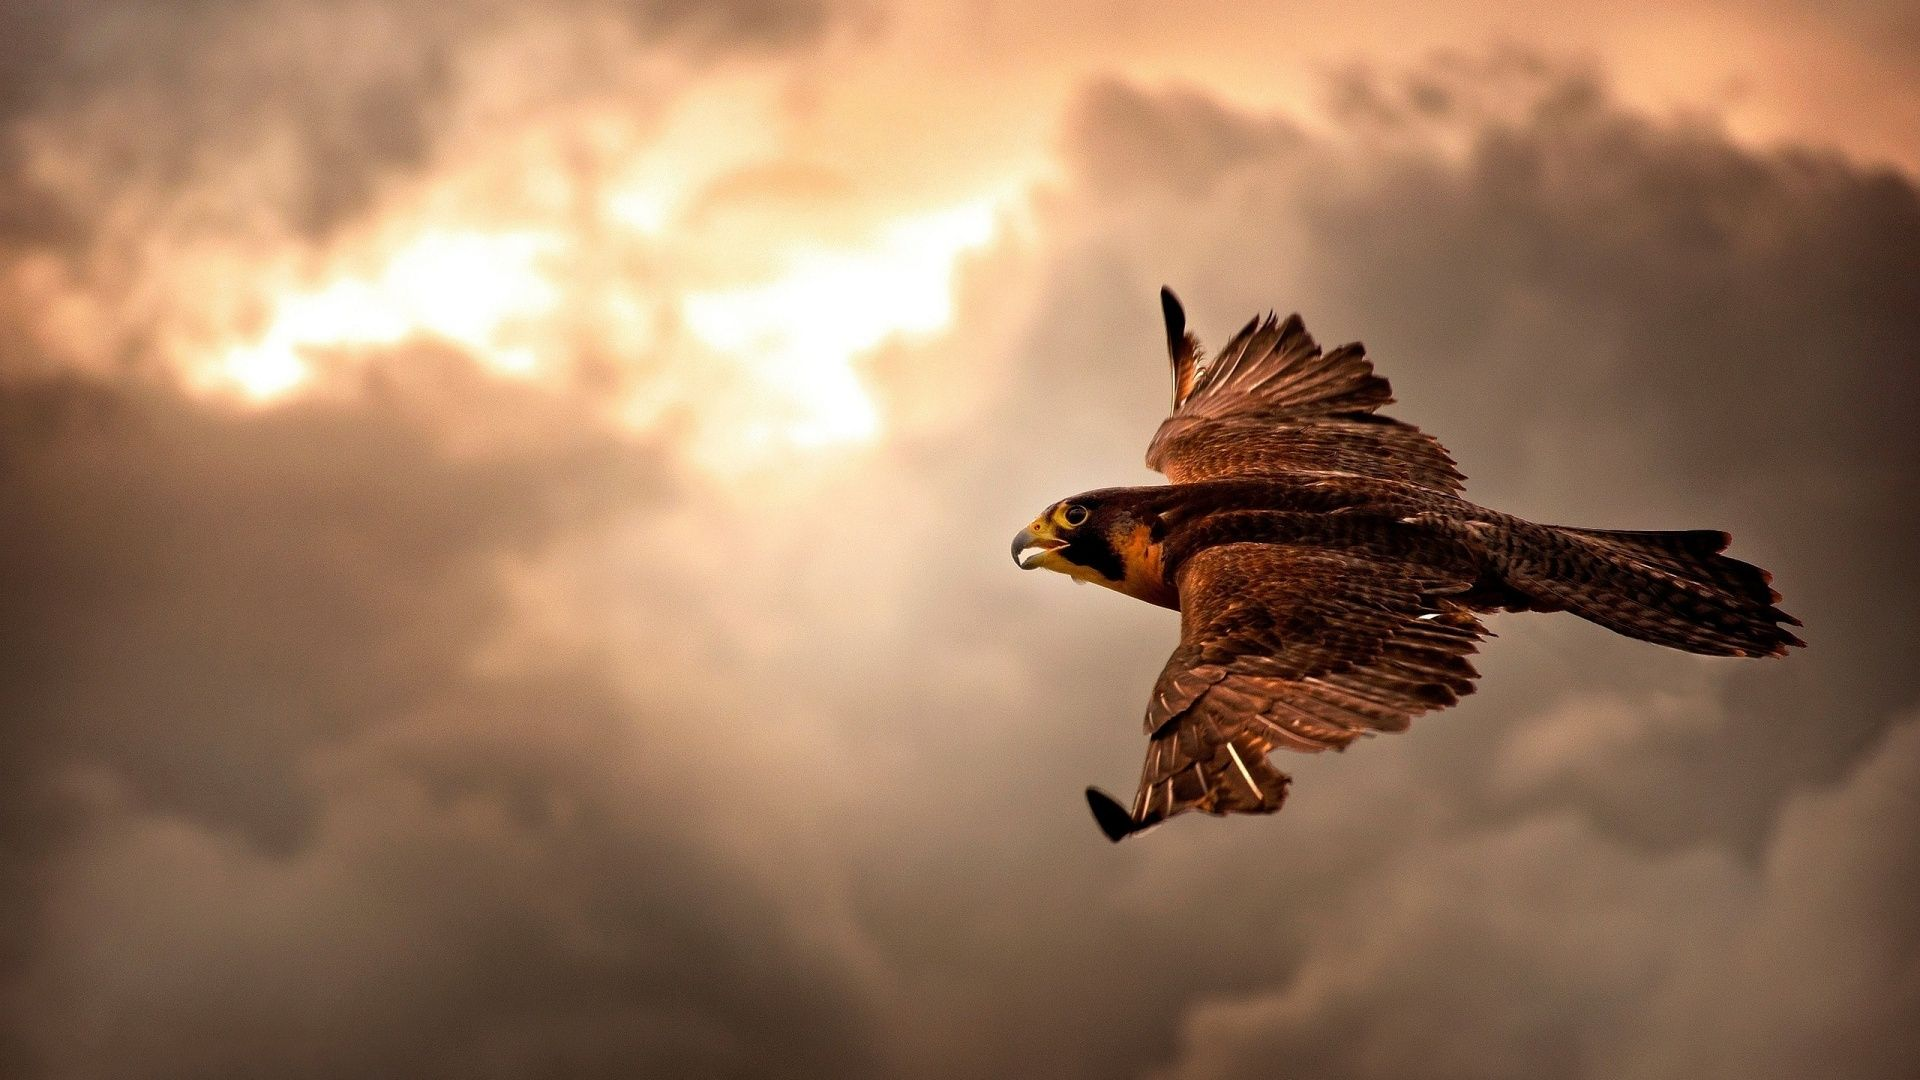 Falcons Wallpaper: 67382963 Awesome Falcon Wallpapers